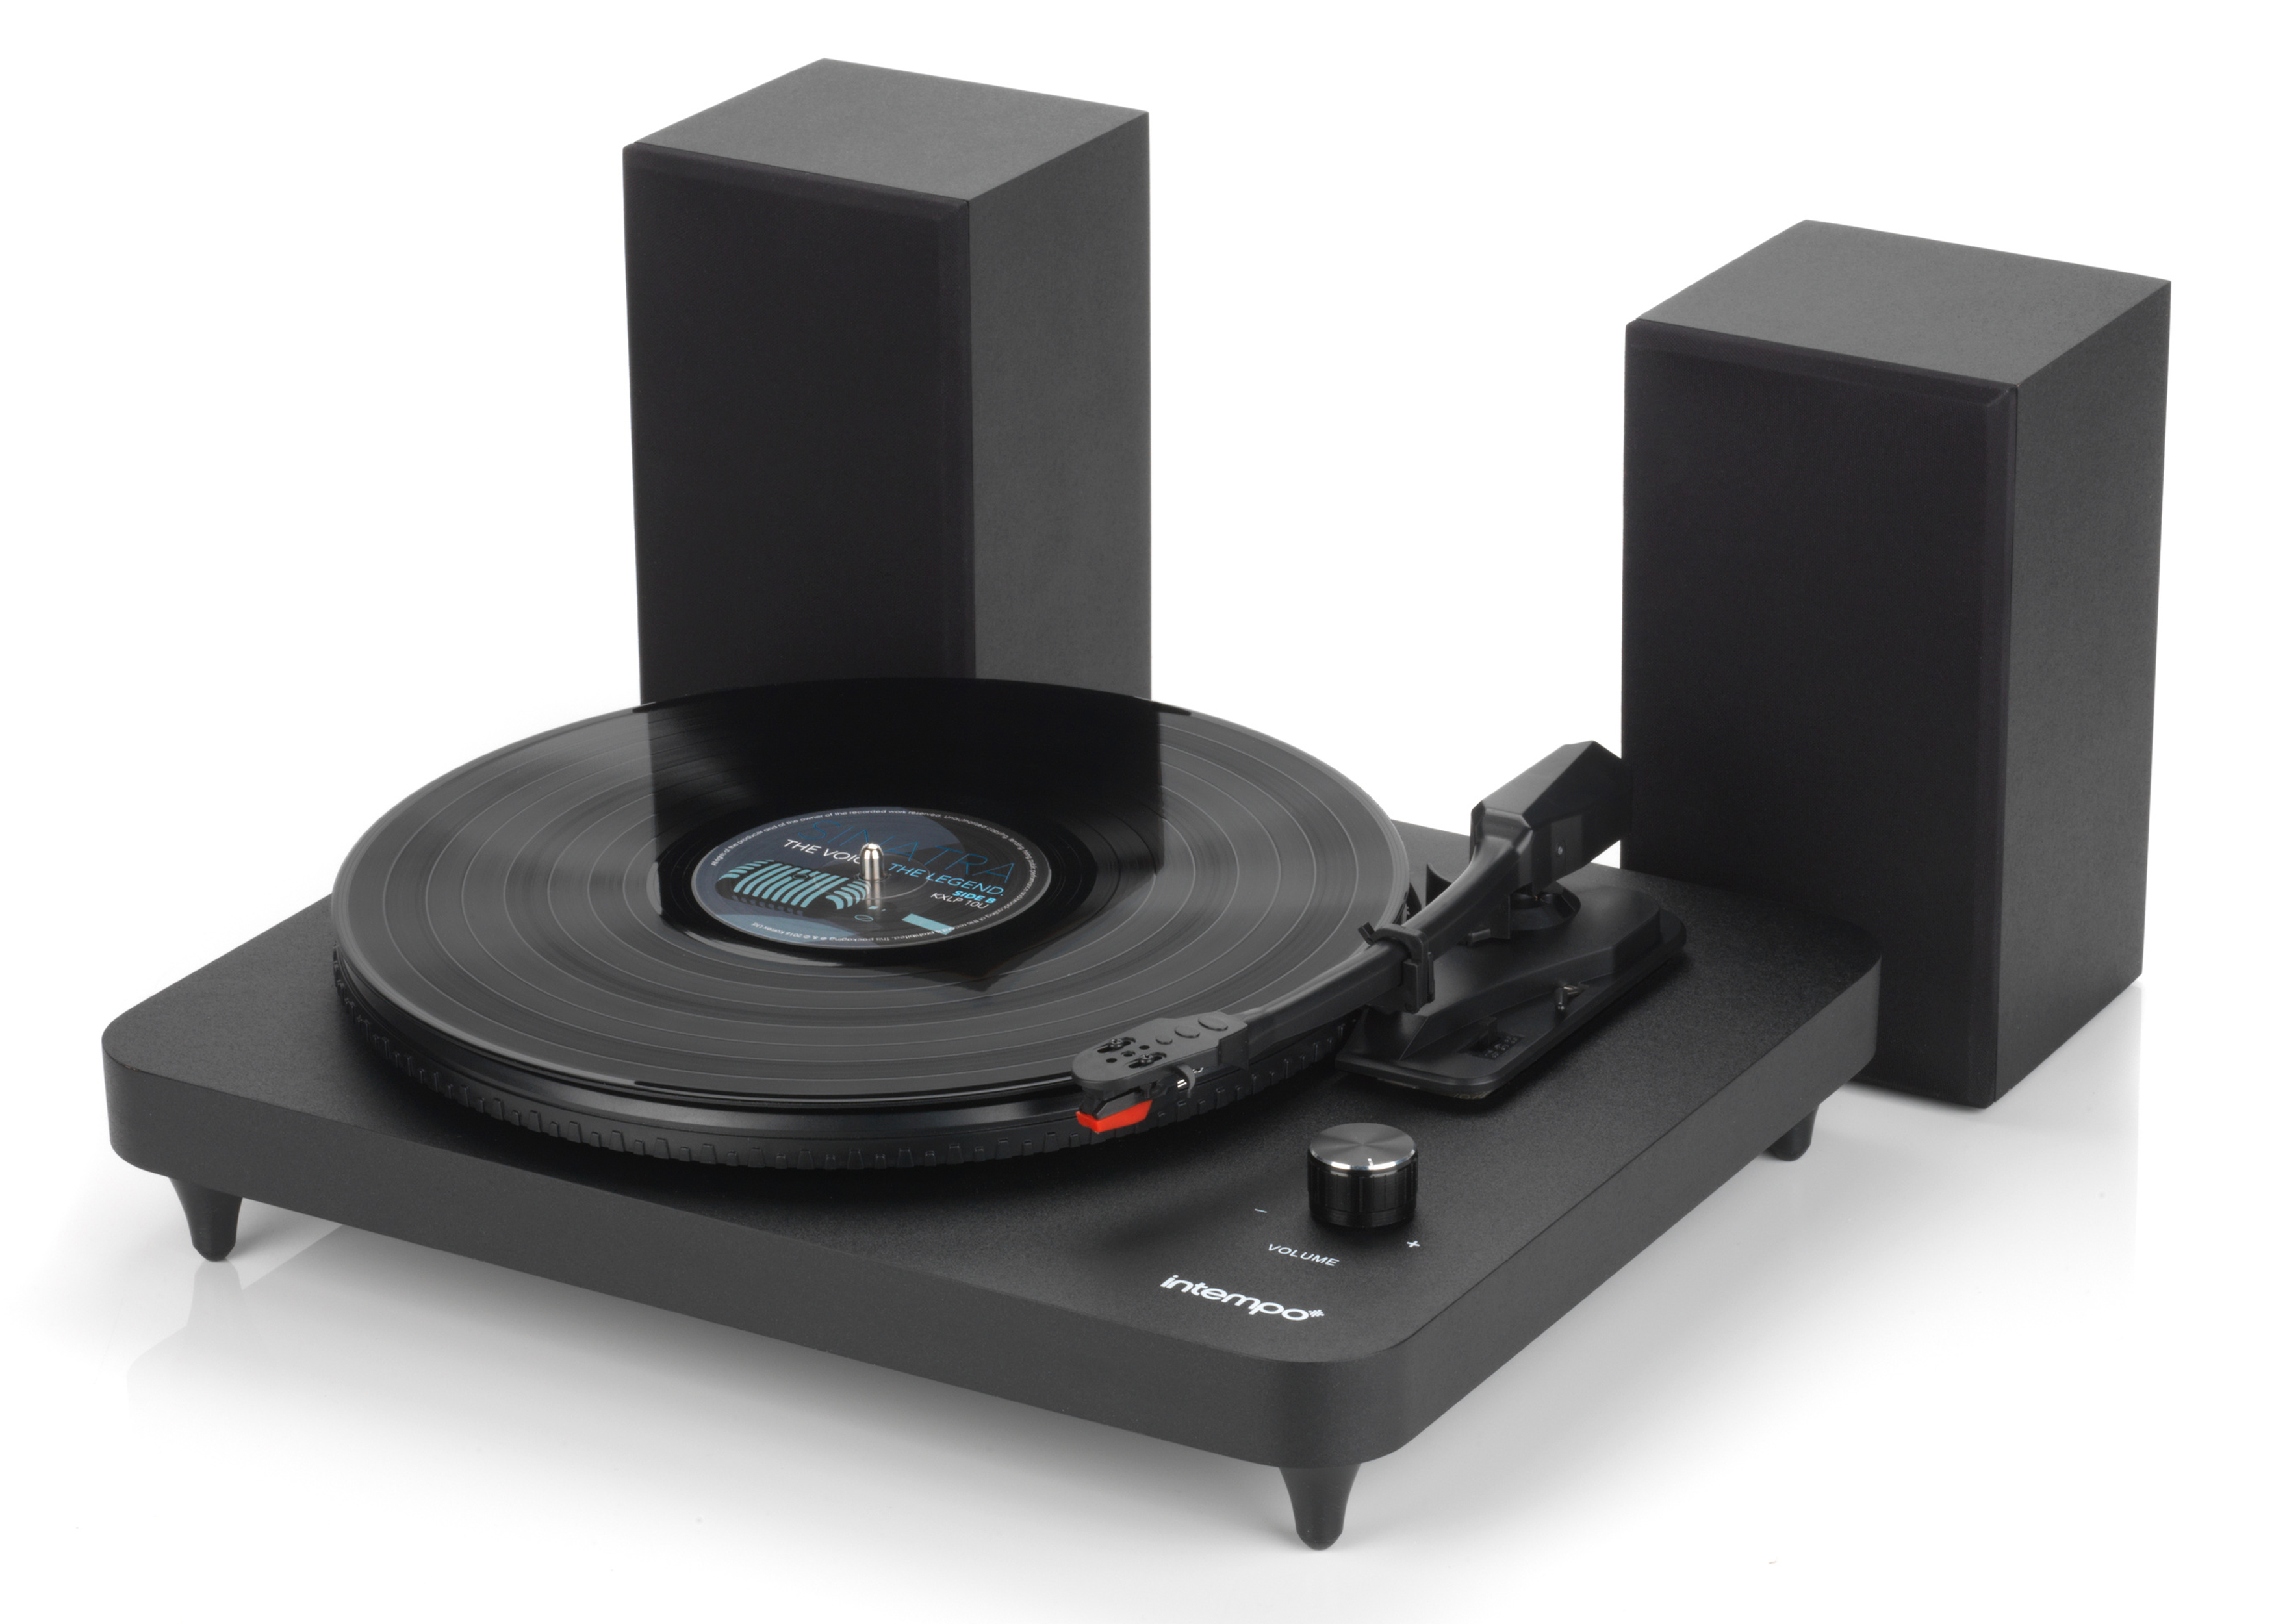 Superieur Intempo Turntable With Stereo Speakers, 6 W, Black